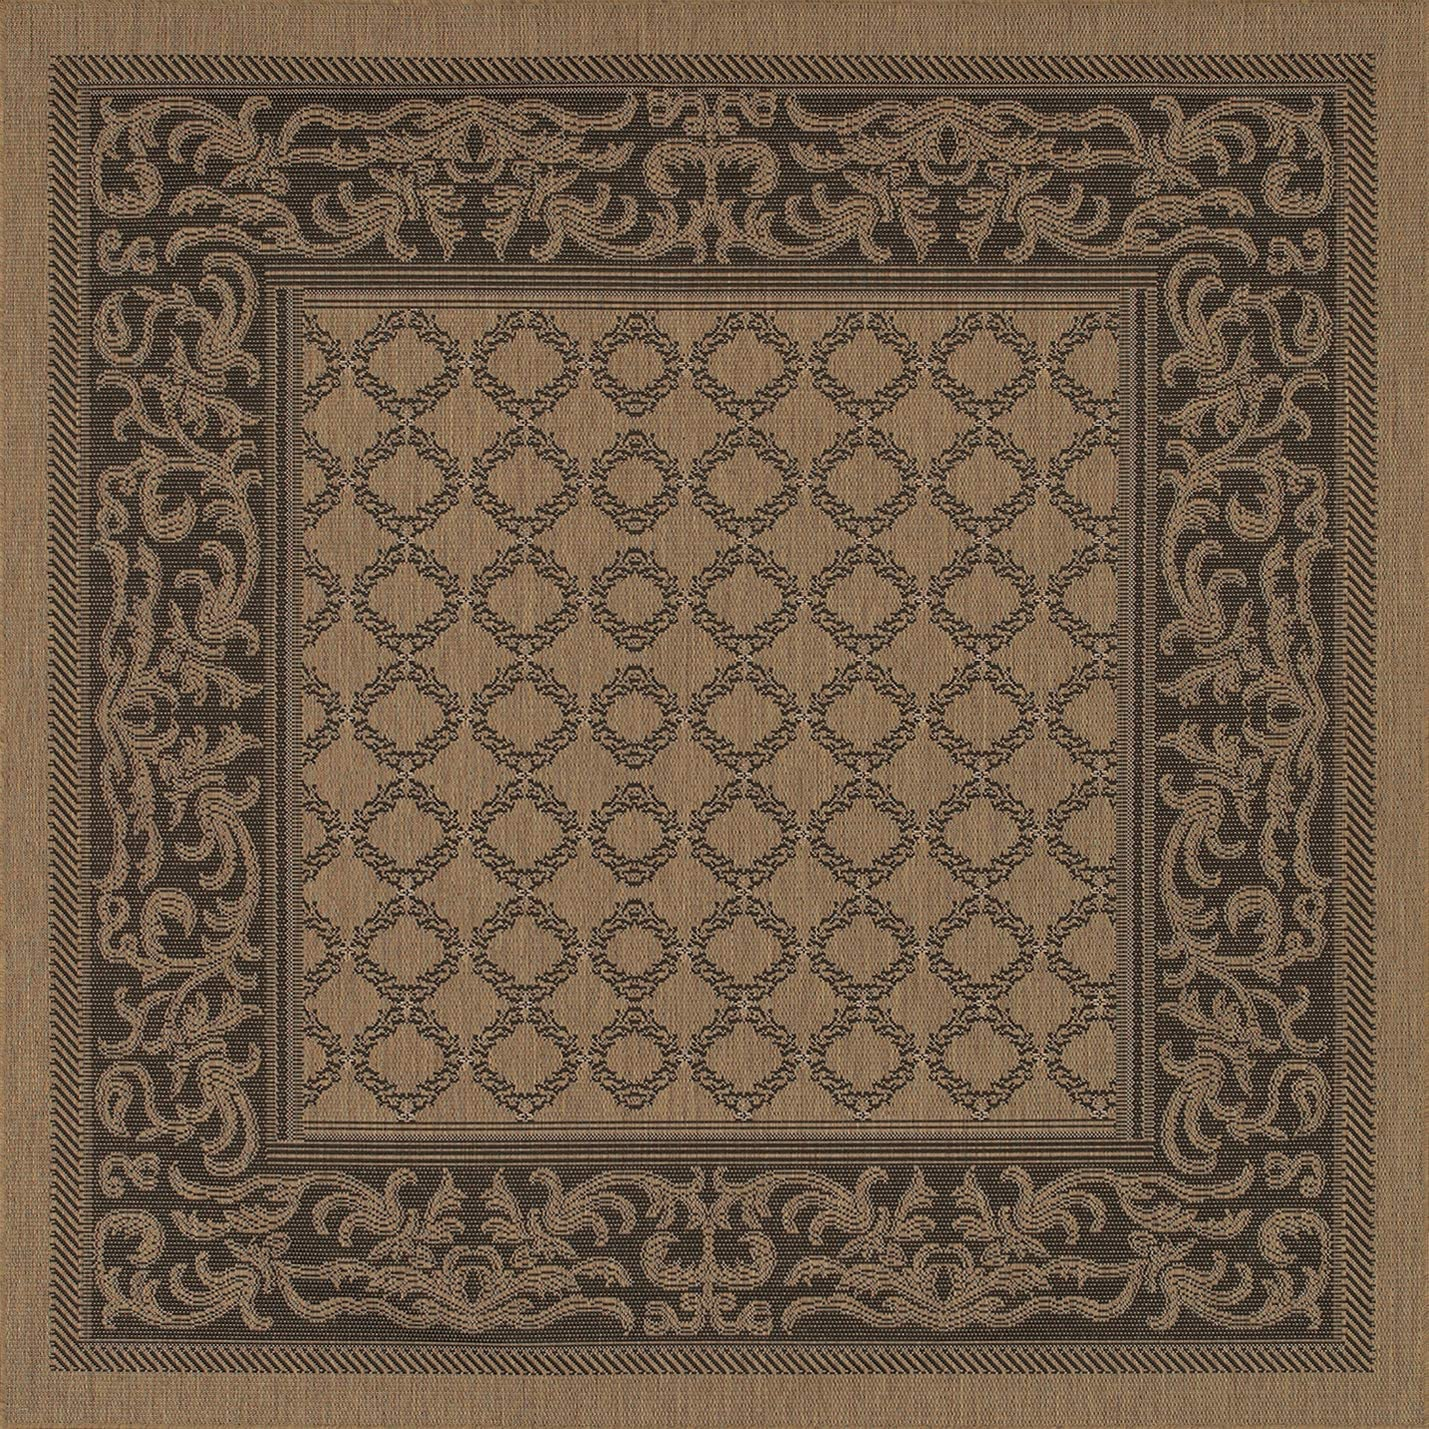 Couristan 1016 2000 Recife Garden Lattice Cocoa Black Rug, 7-Feet 6-Inch Square